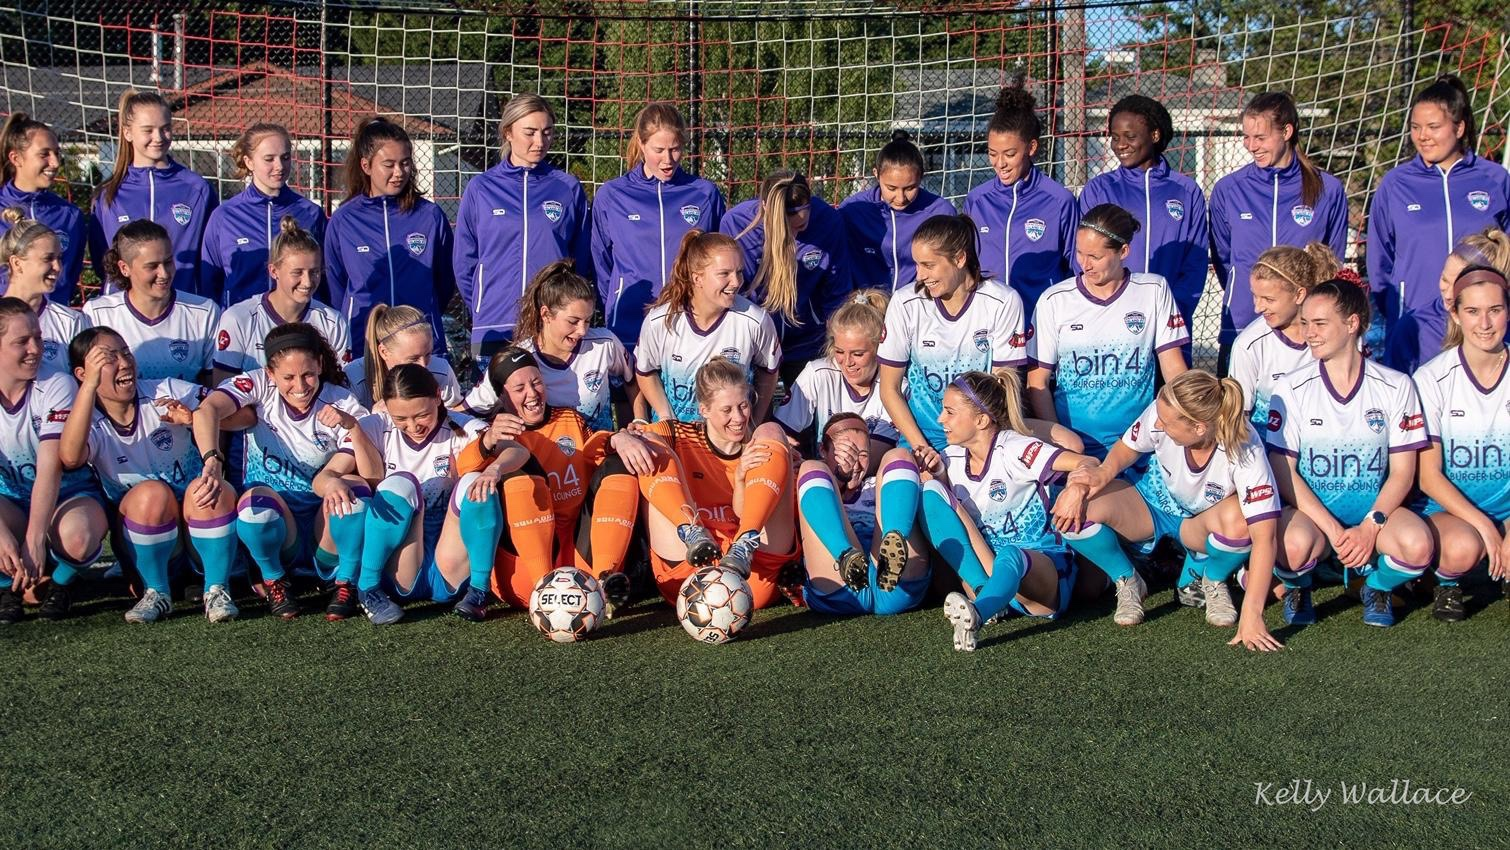 Playing footy should be fun—the women of Vancouver Island FC have a laugh during a team photo shoot.